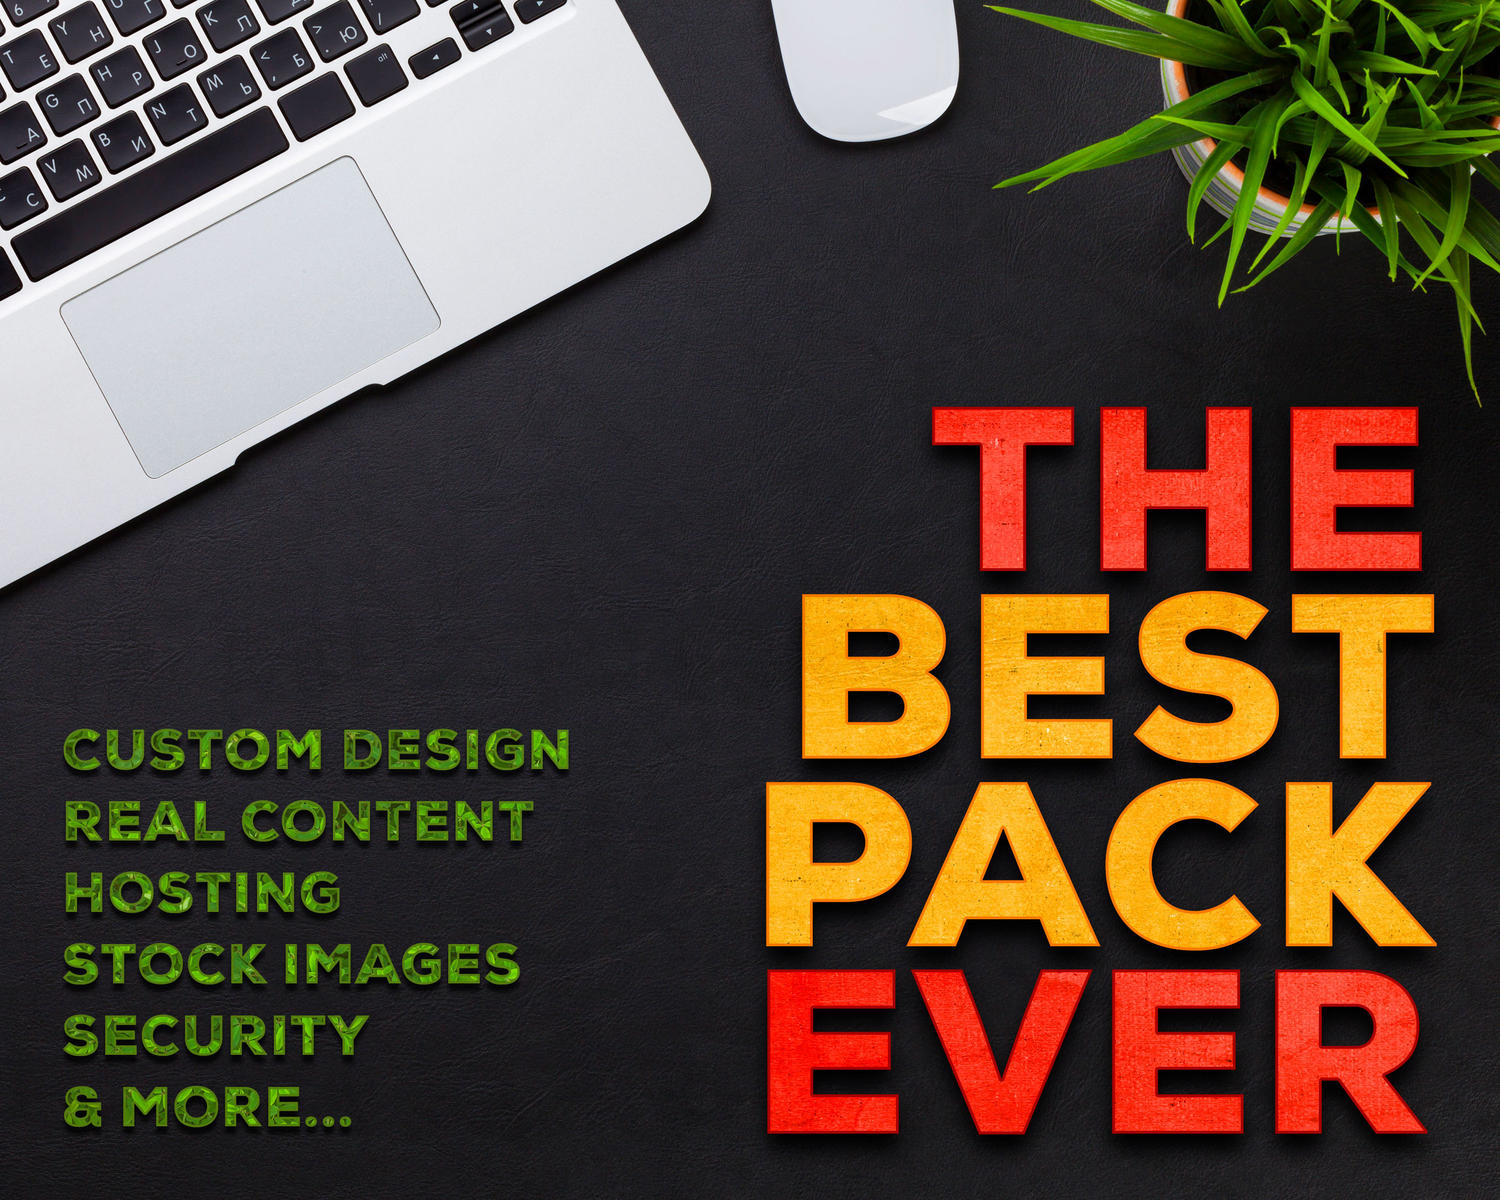 All-In-One Pack by ExcelloBranding - 110007